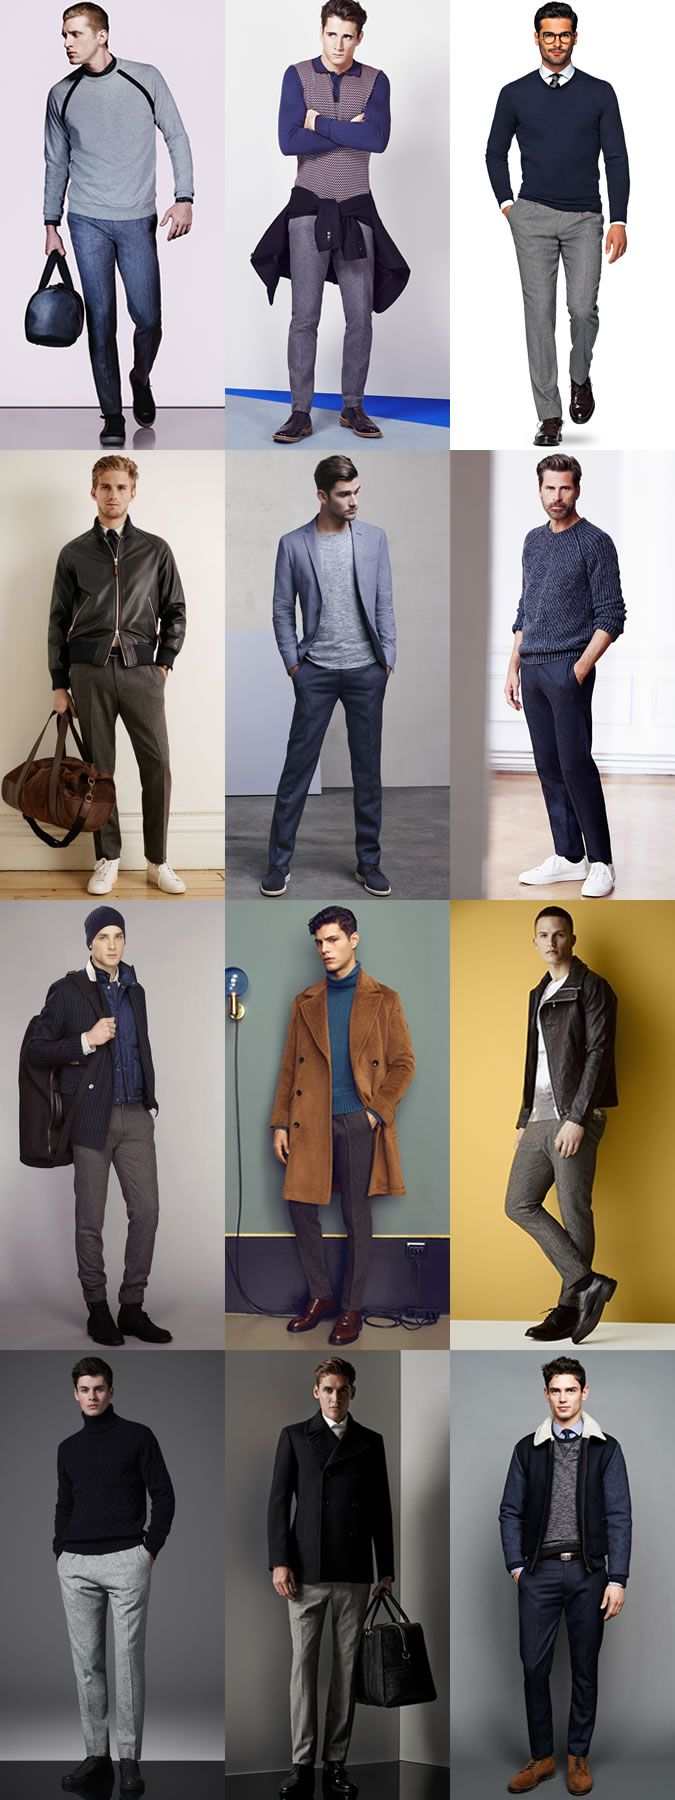 Men's Autumn Wardrobe Essentials: Wool Trousers Autumn Outfit Inspiration Lookbook